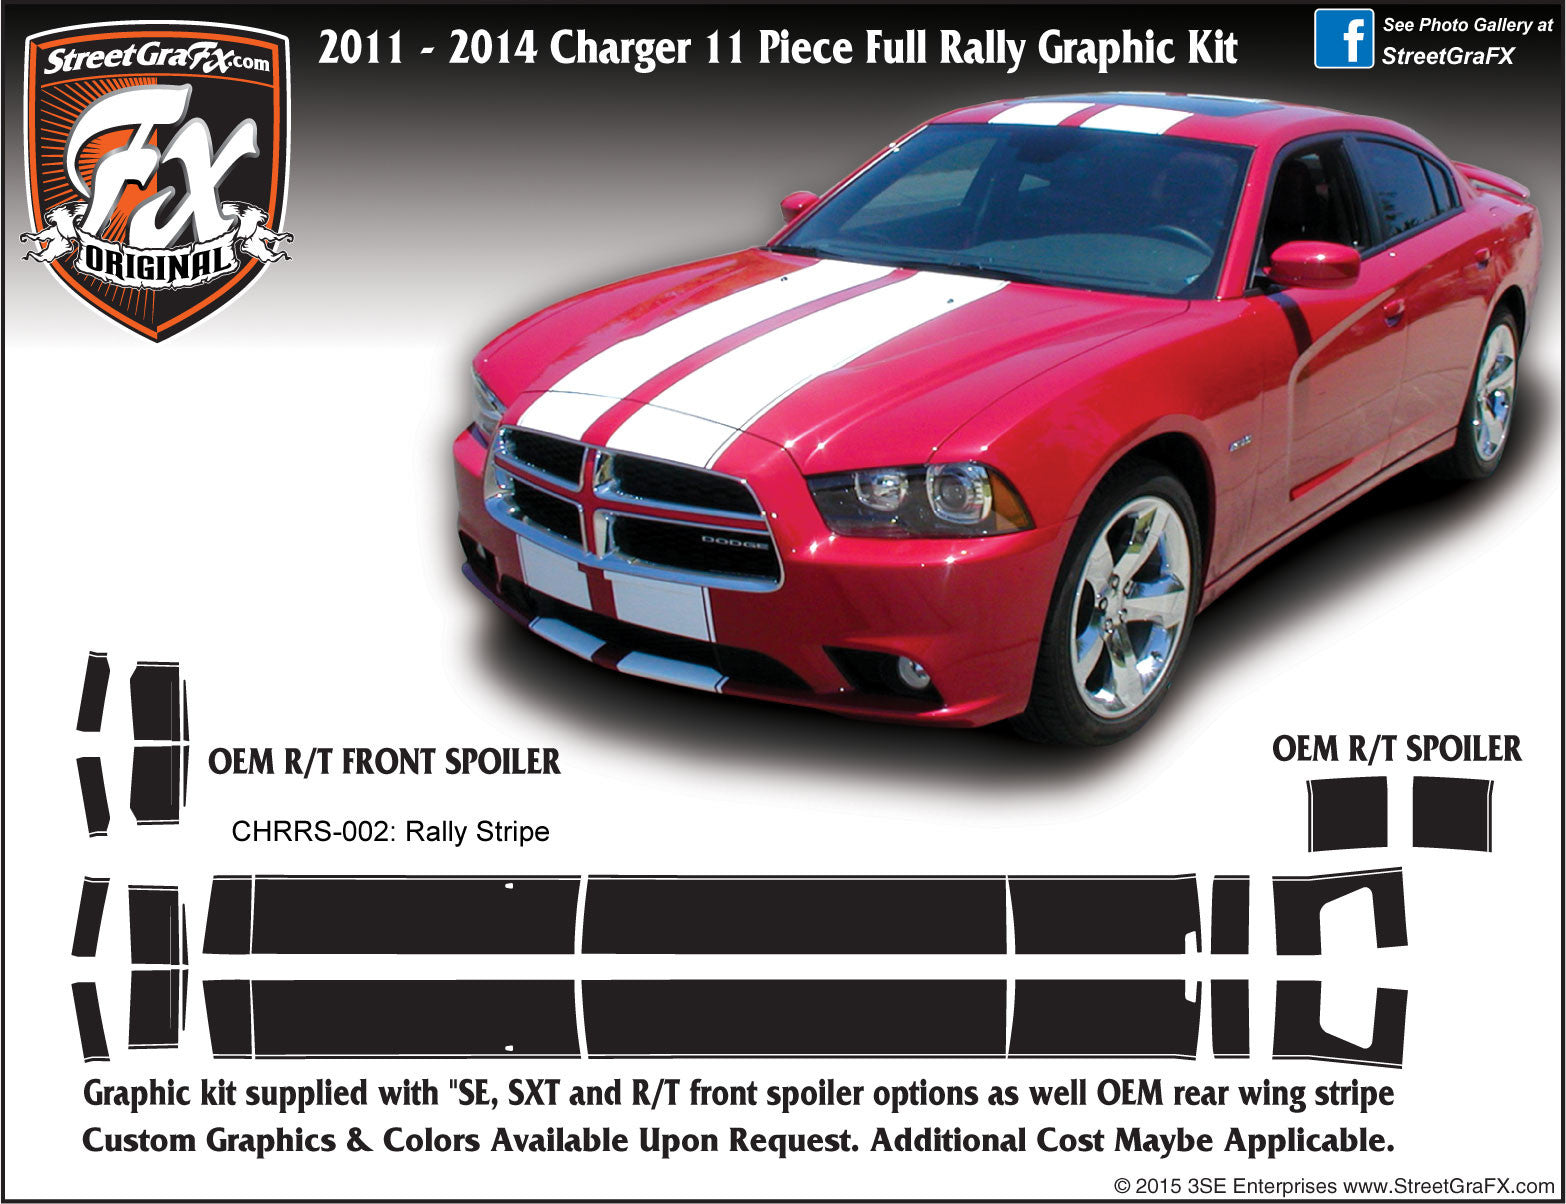 Dodge Charger Stripes, Racing Stripes & R/T Graphic kit – streetgrafx